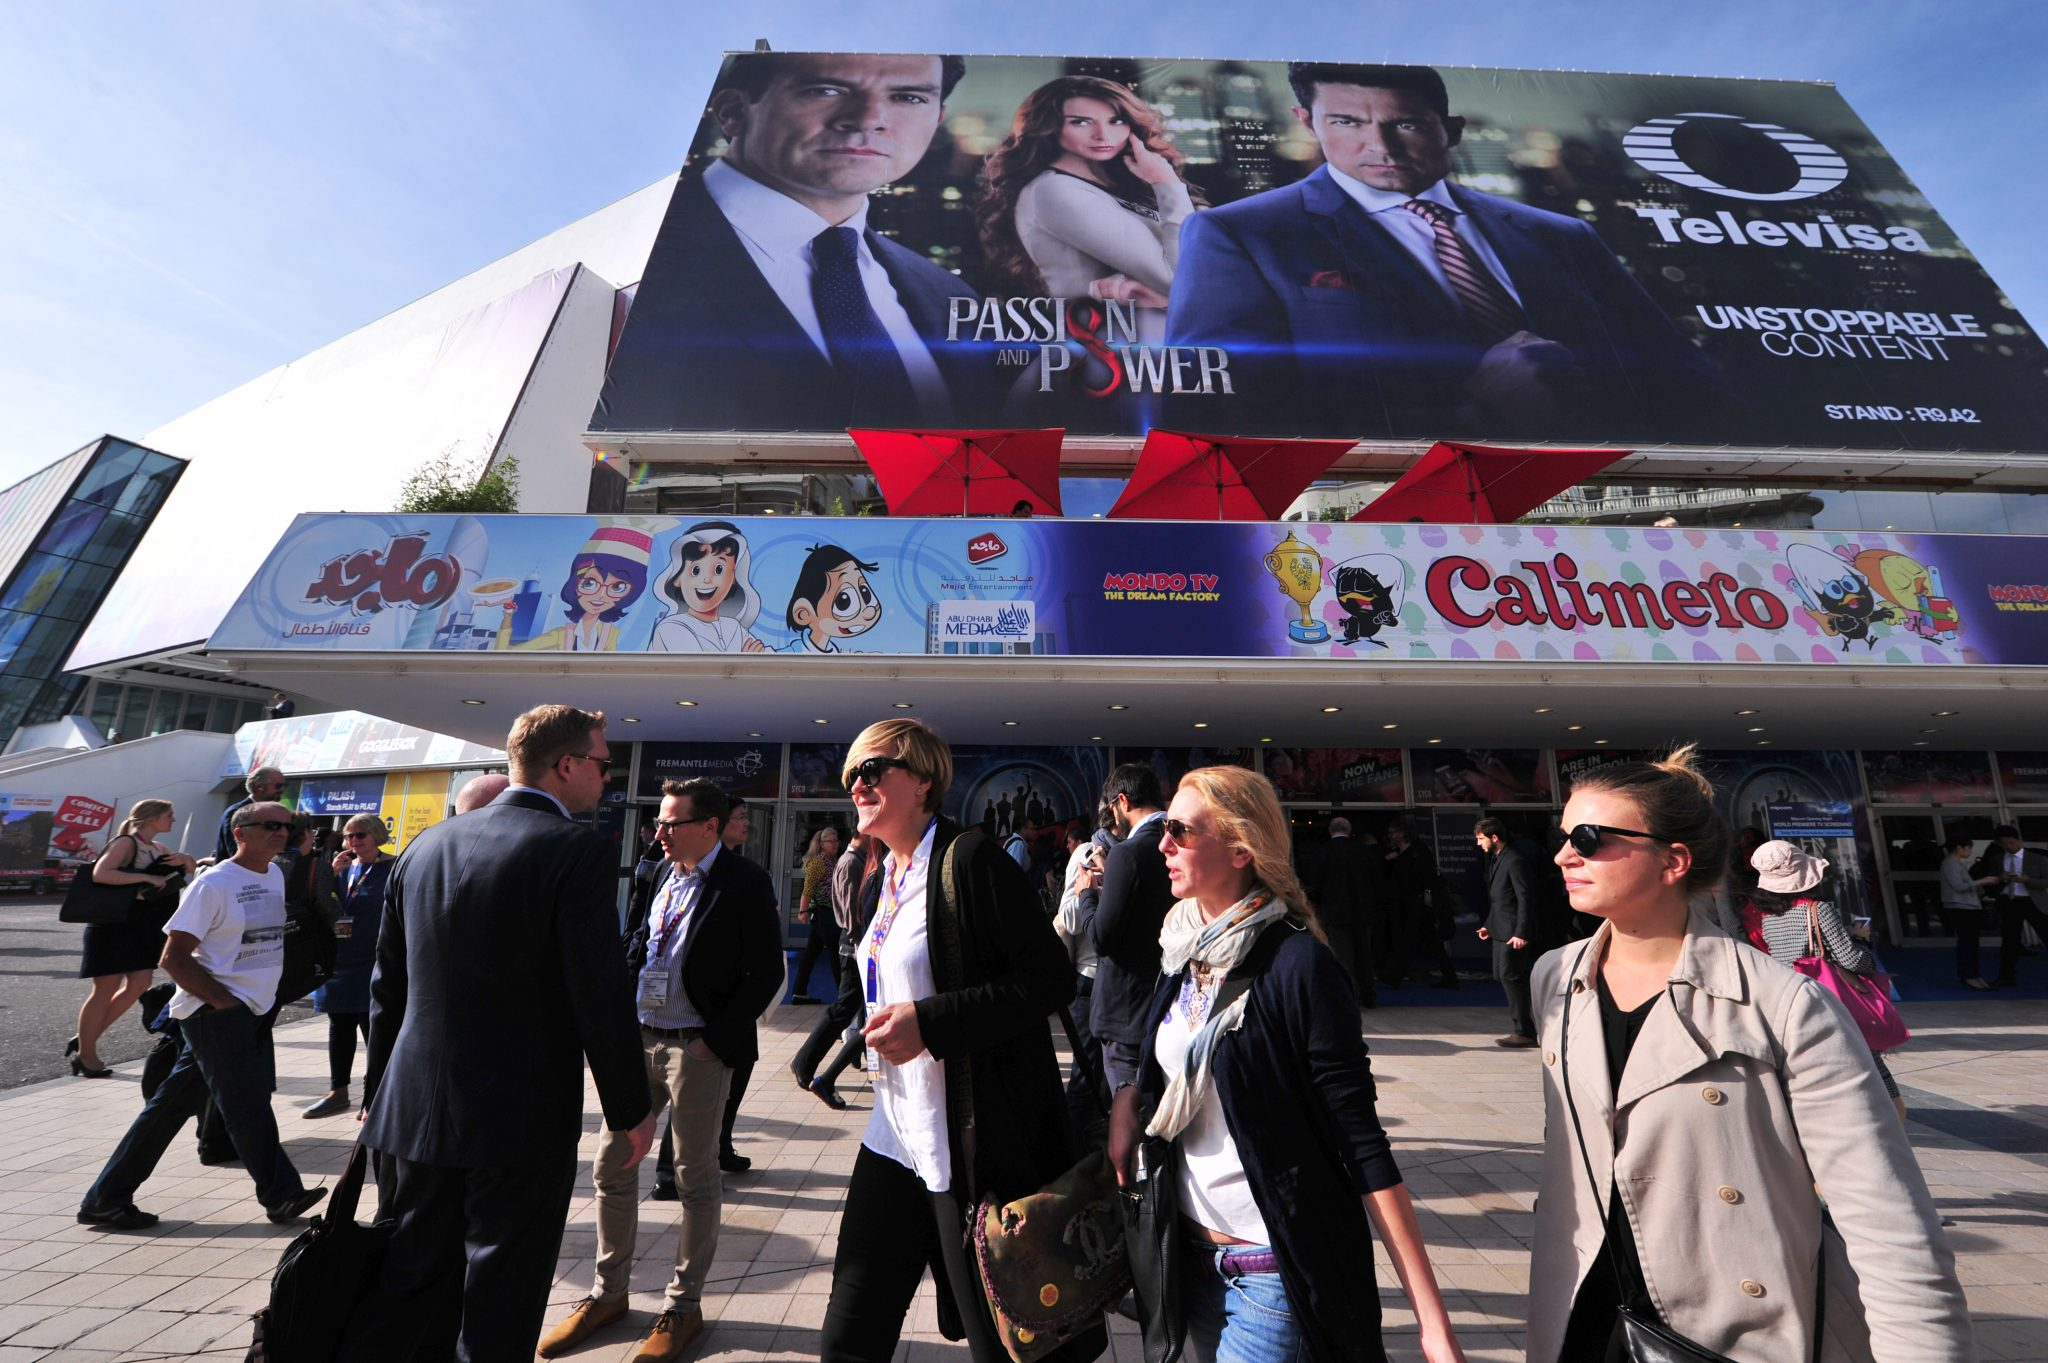 MIPCOM 2015 - ATMOSPHERE - OUTSIDE - PALAIS DES FESTIVALS